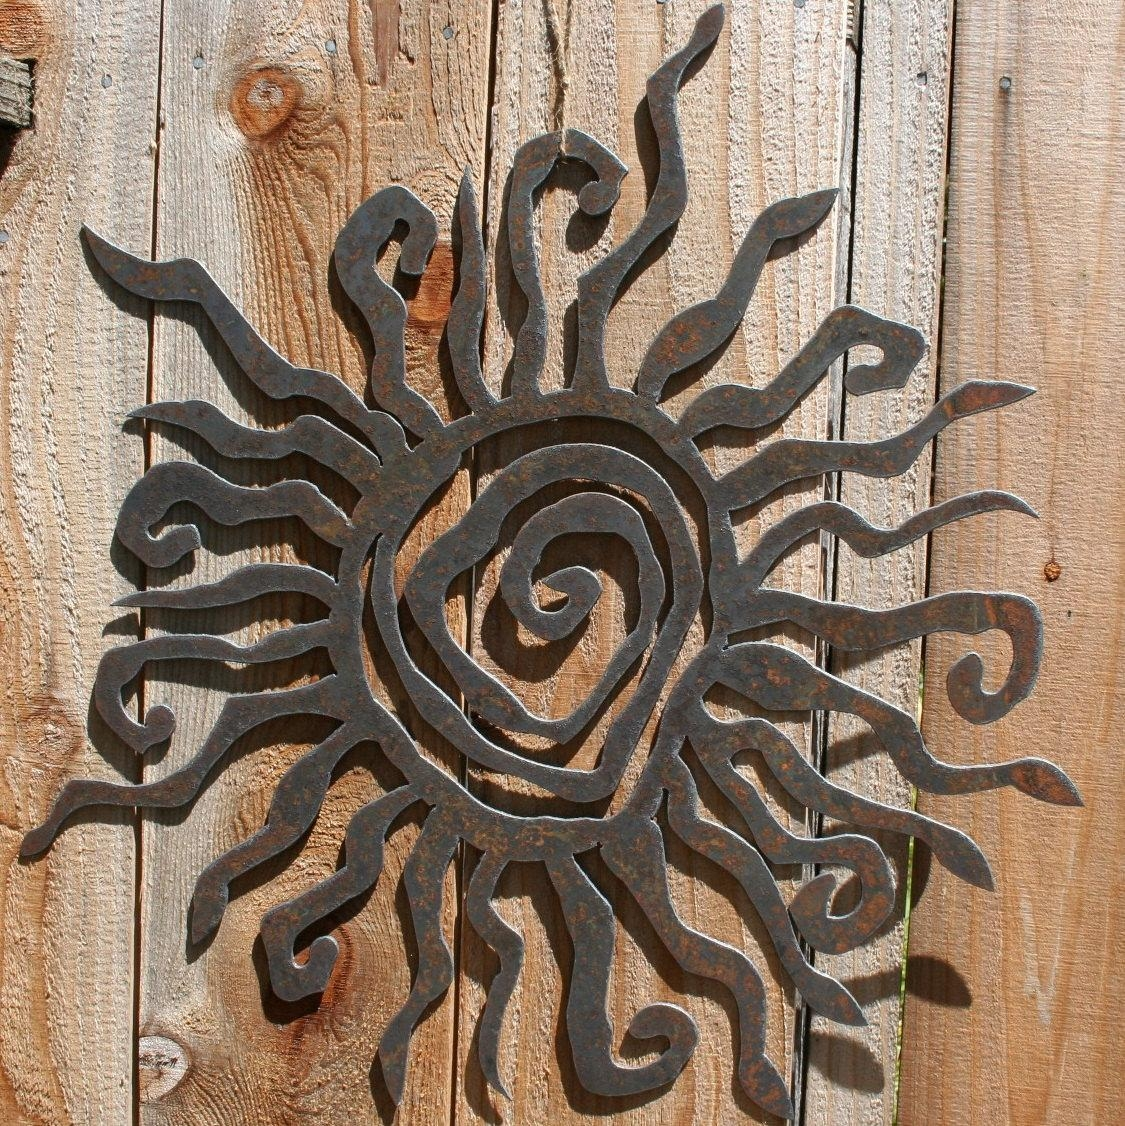 Rustic Sun Indoor/outdoor Wall Decor 30 Recycled Steel Intended For Outdoor Wall Sculpture Art (View 5 of 20)